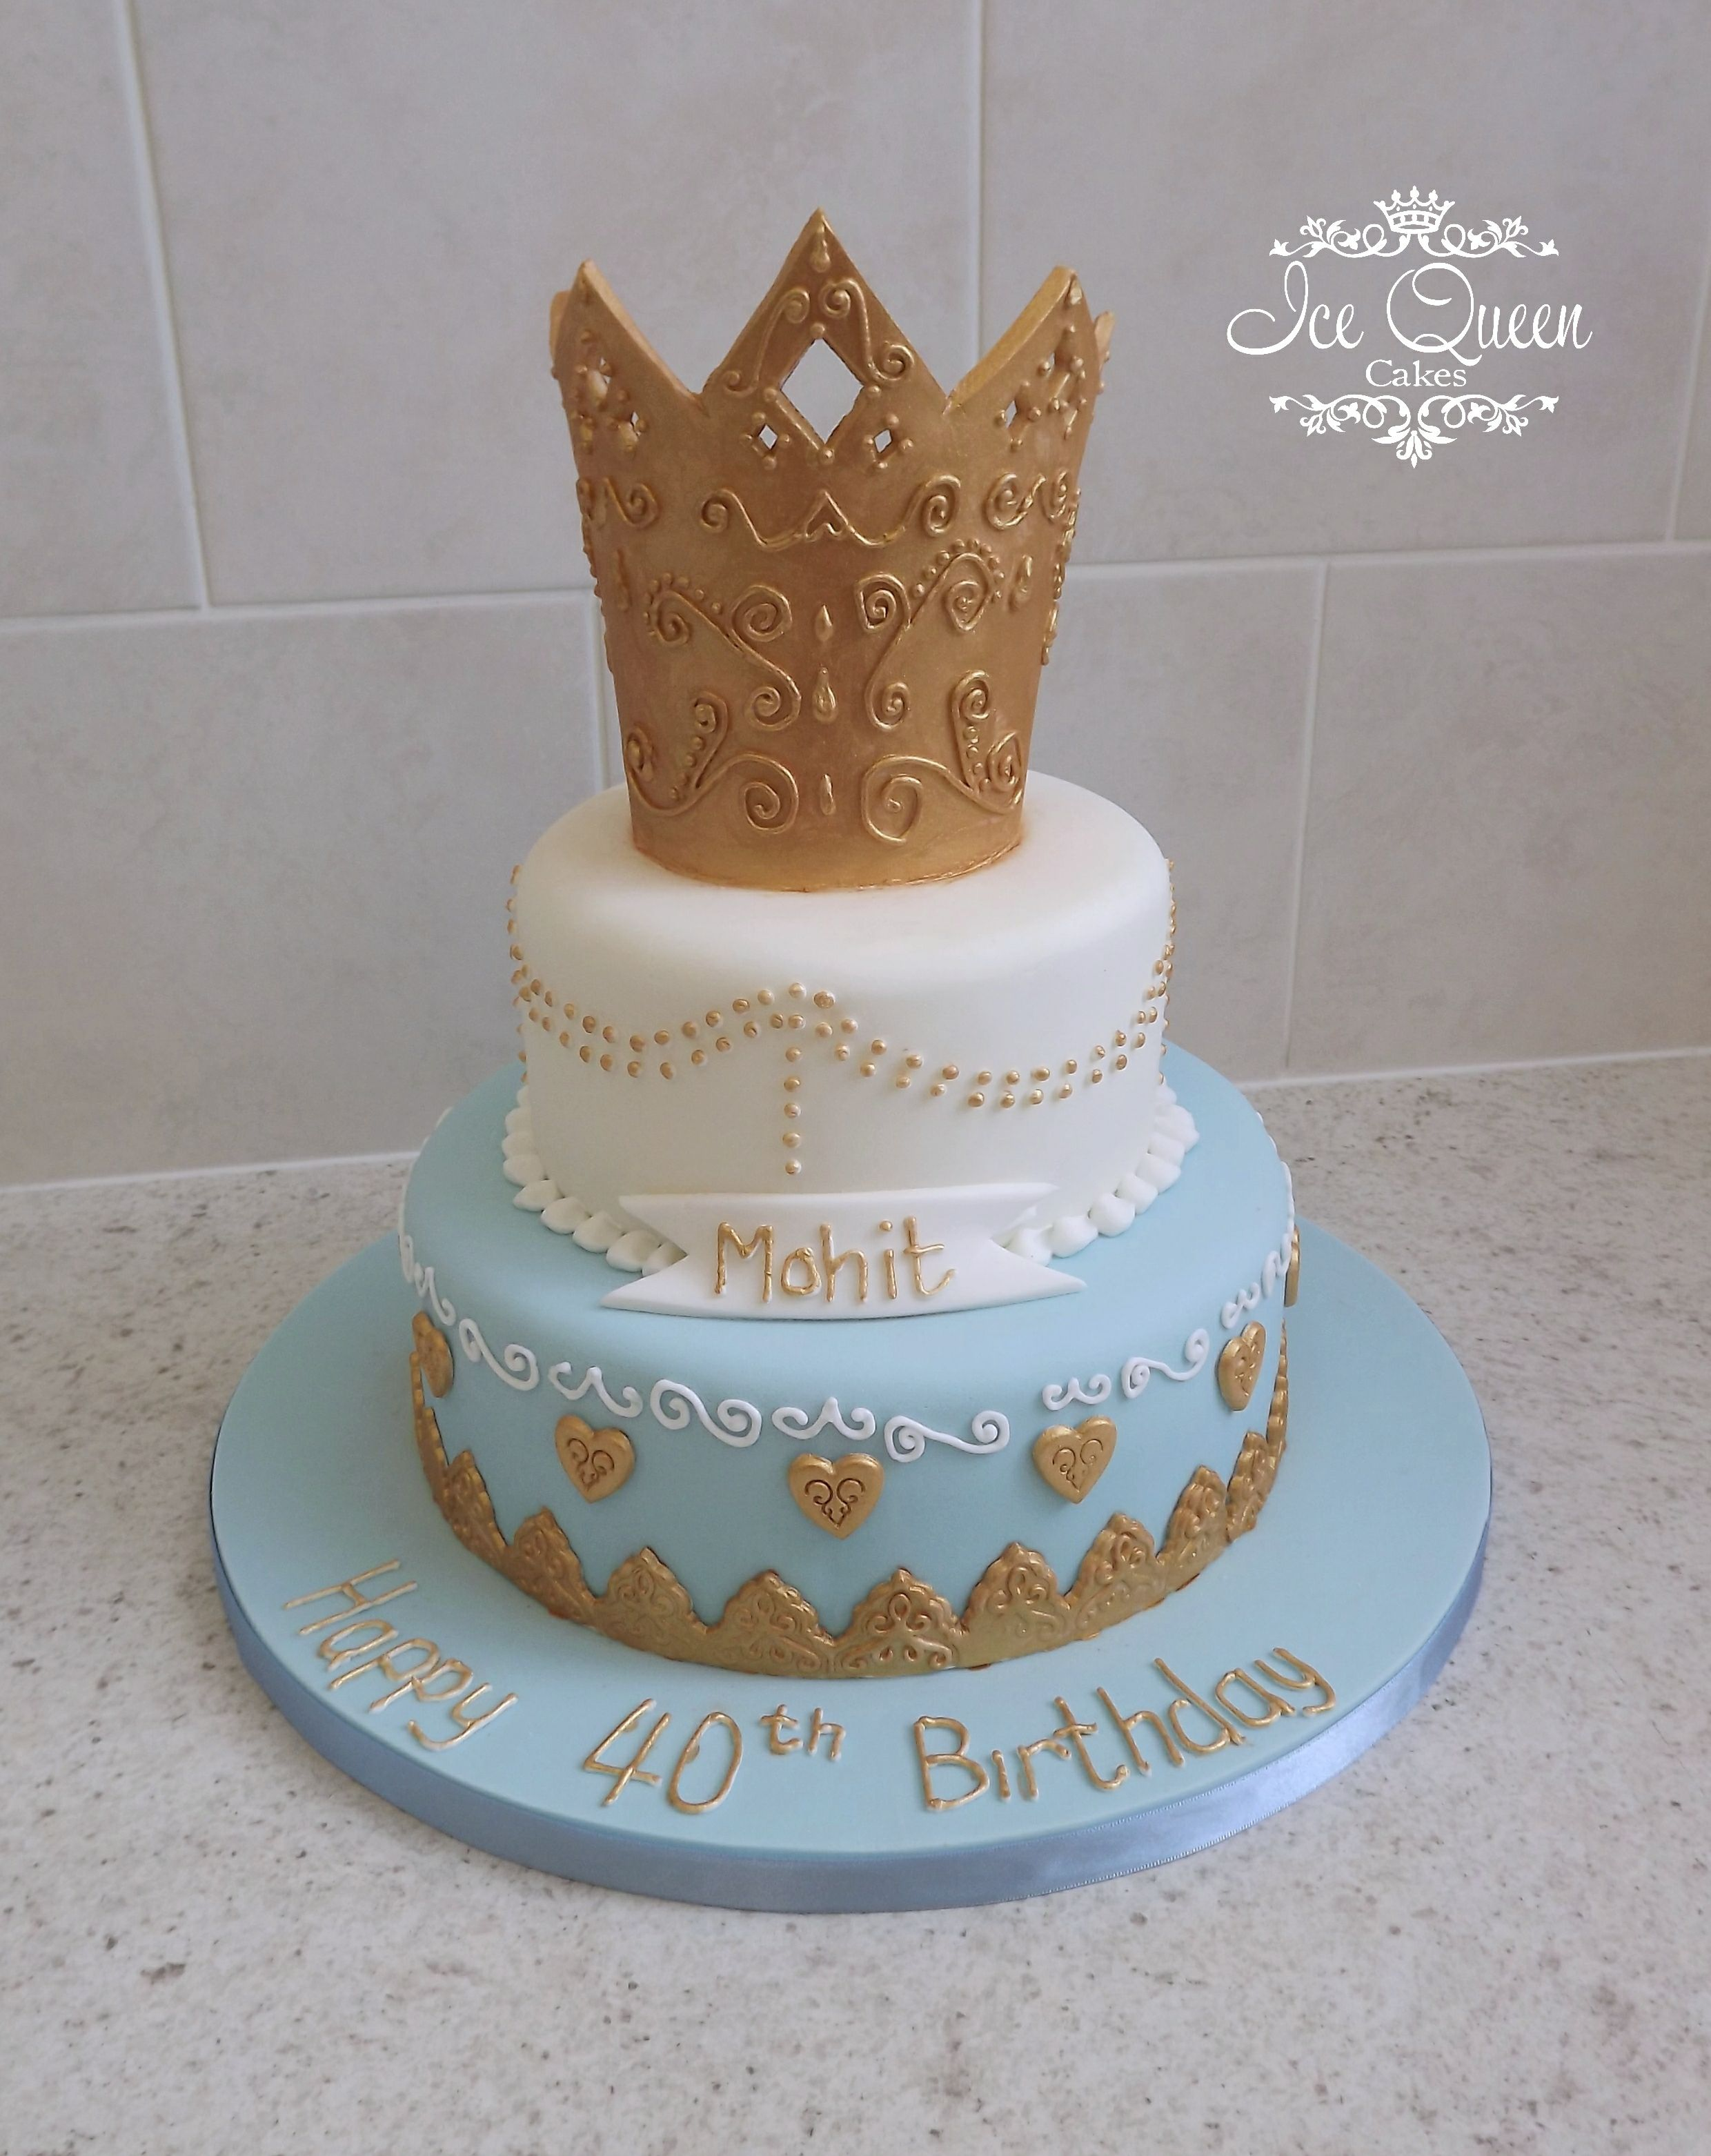 2 tier and crown birthday cake ice queen cakes designer wedding on birthday cake queen st